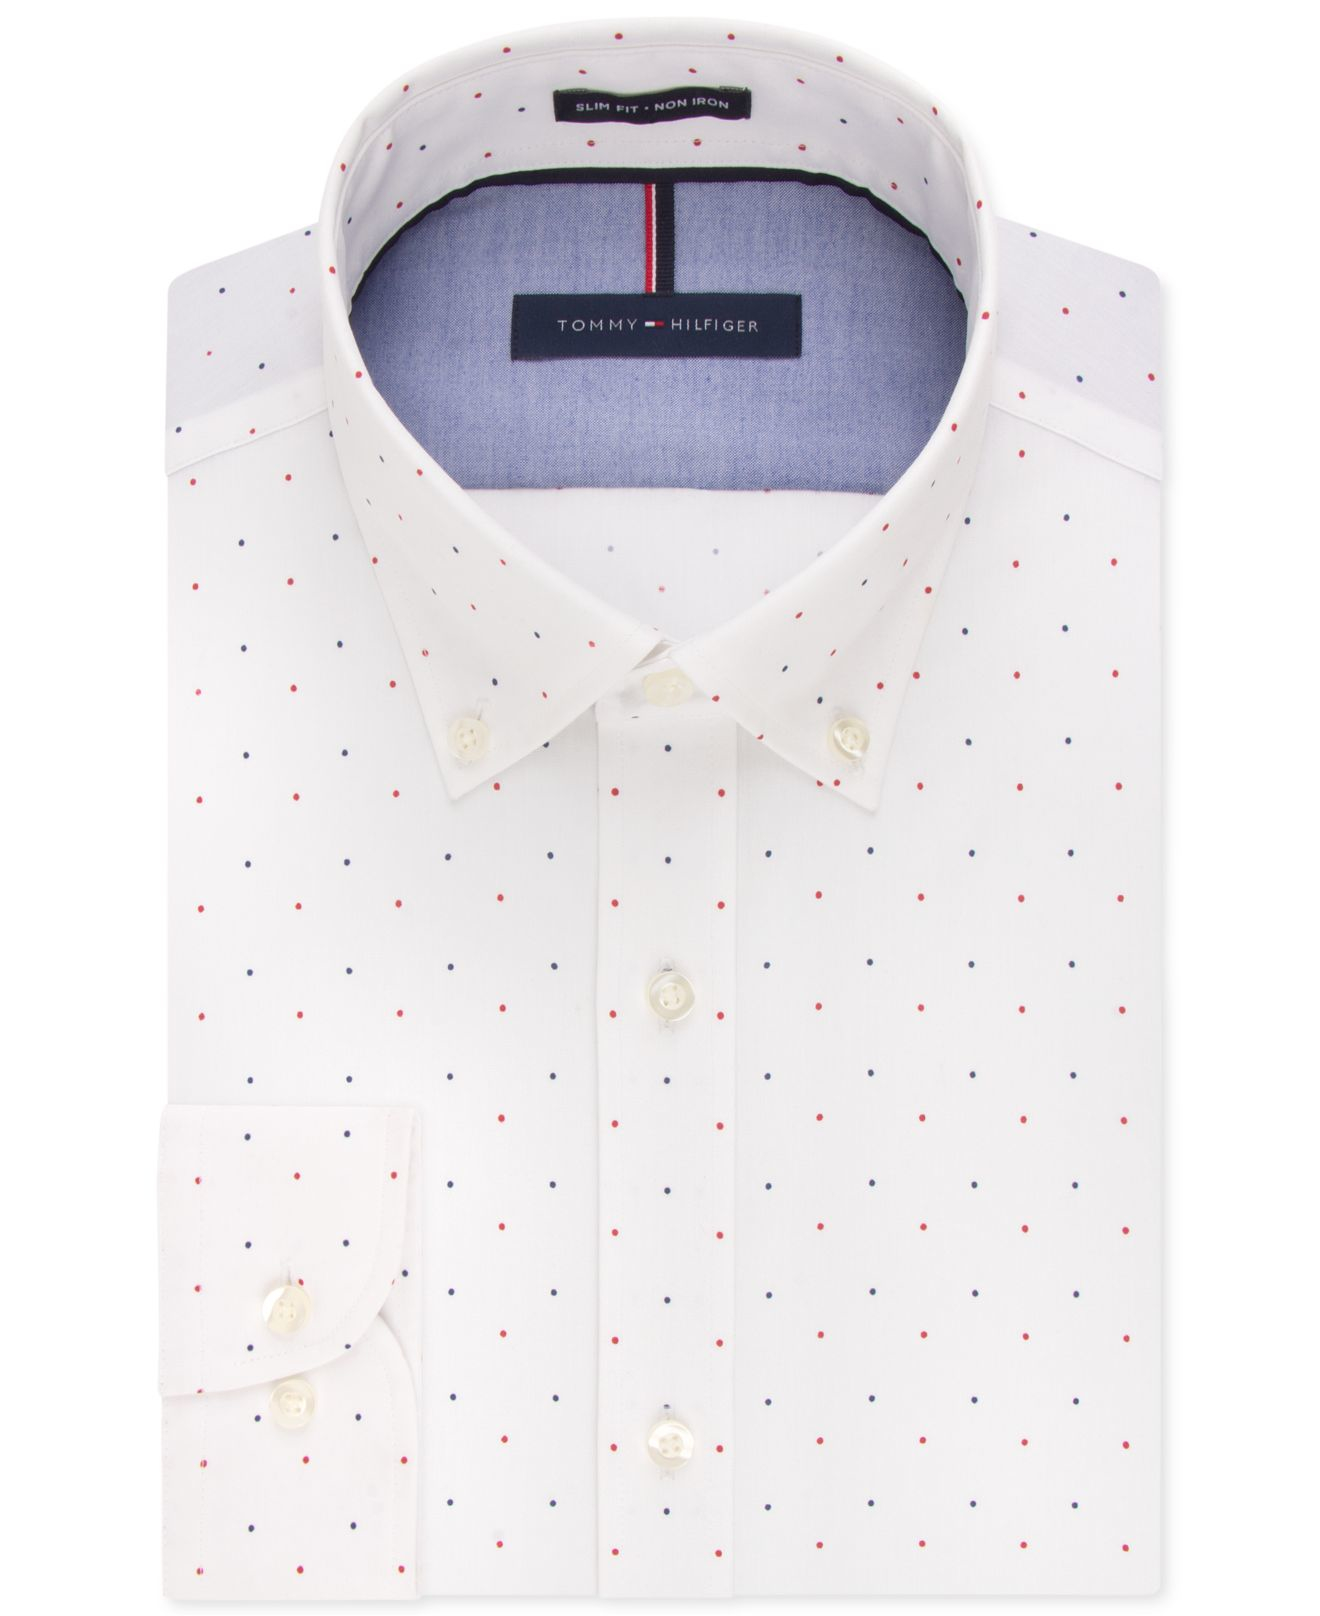 tommy hilfiger slim fit non iron soft wash red white and